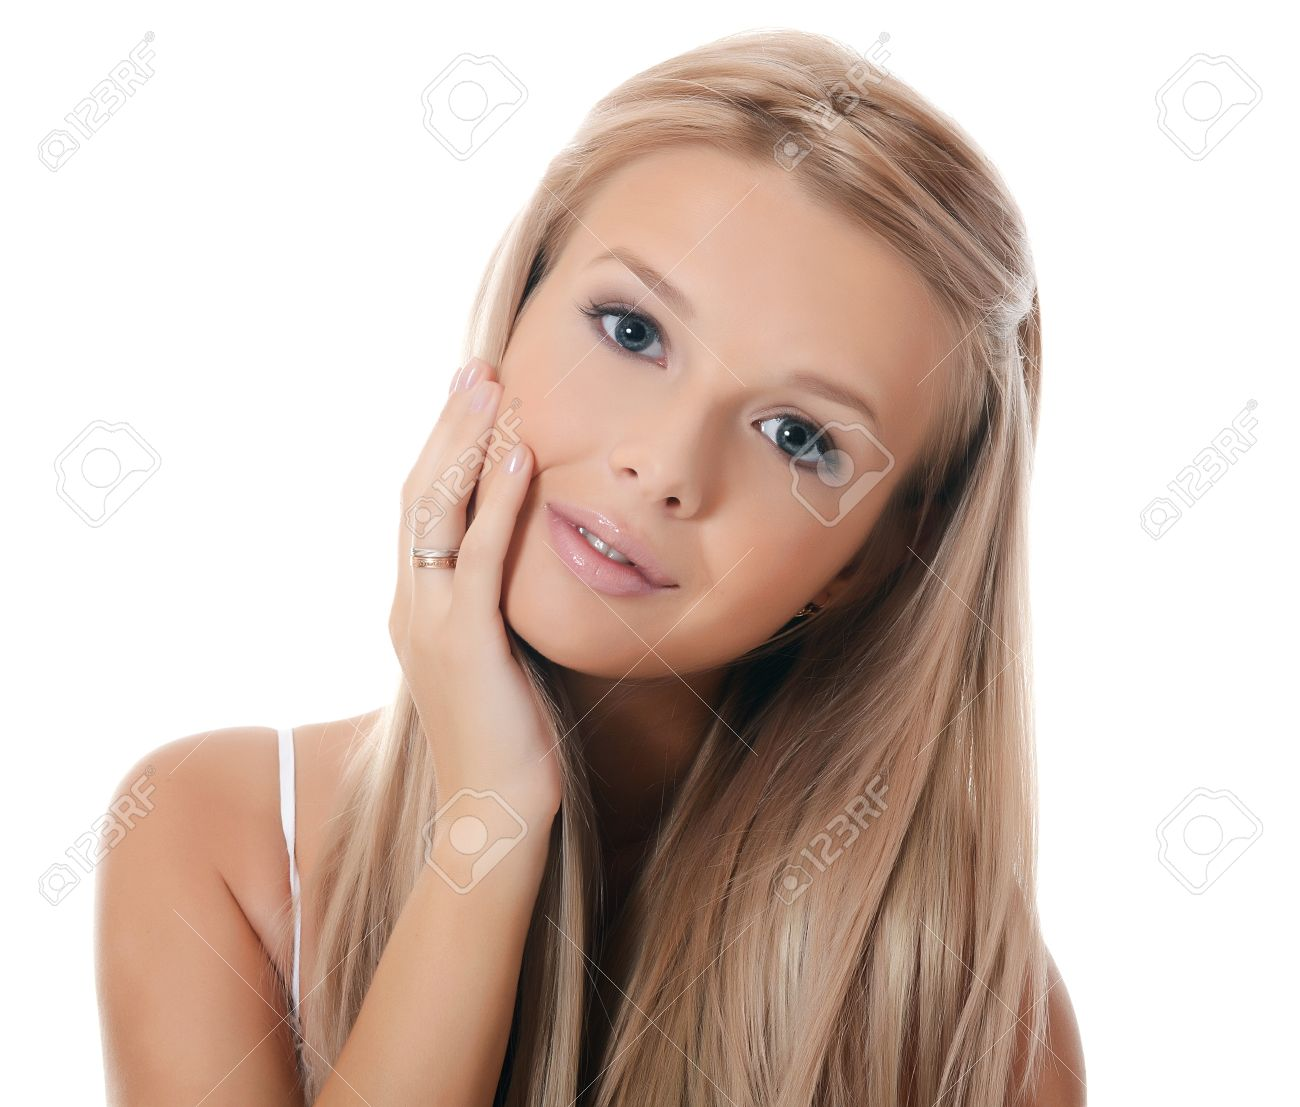 The young sensual girl with beautiful hair Stock Photo - 16751721